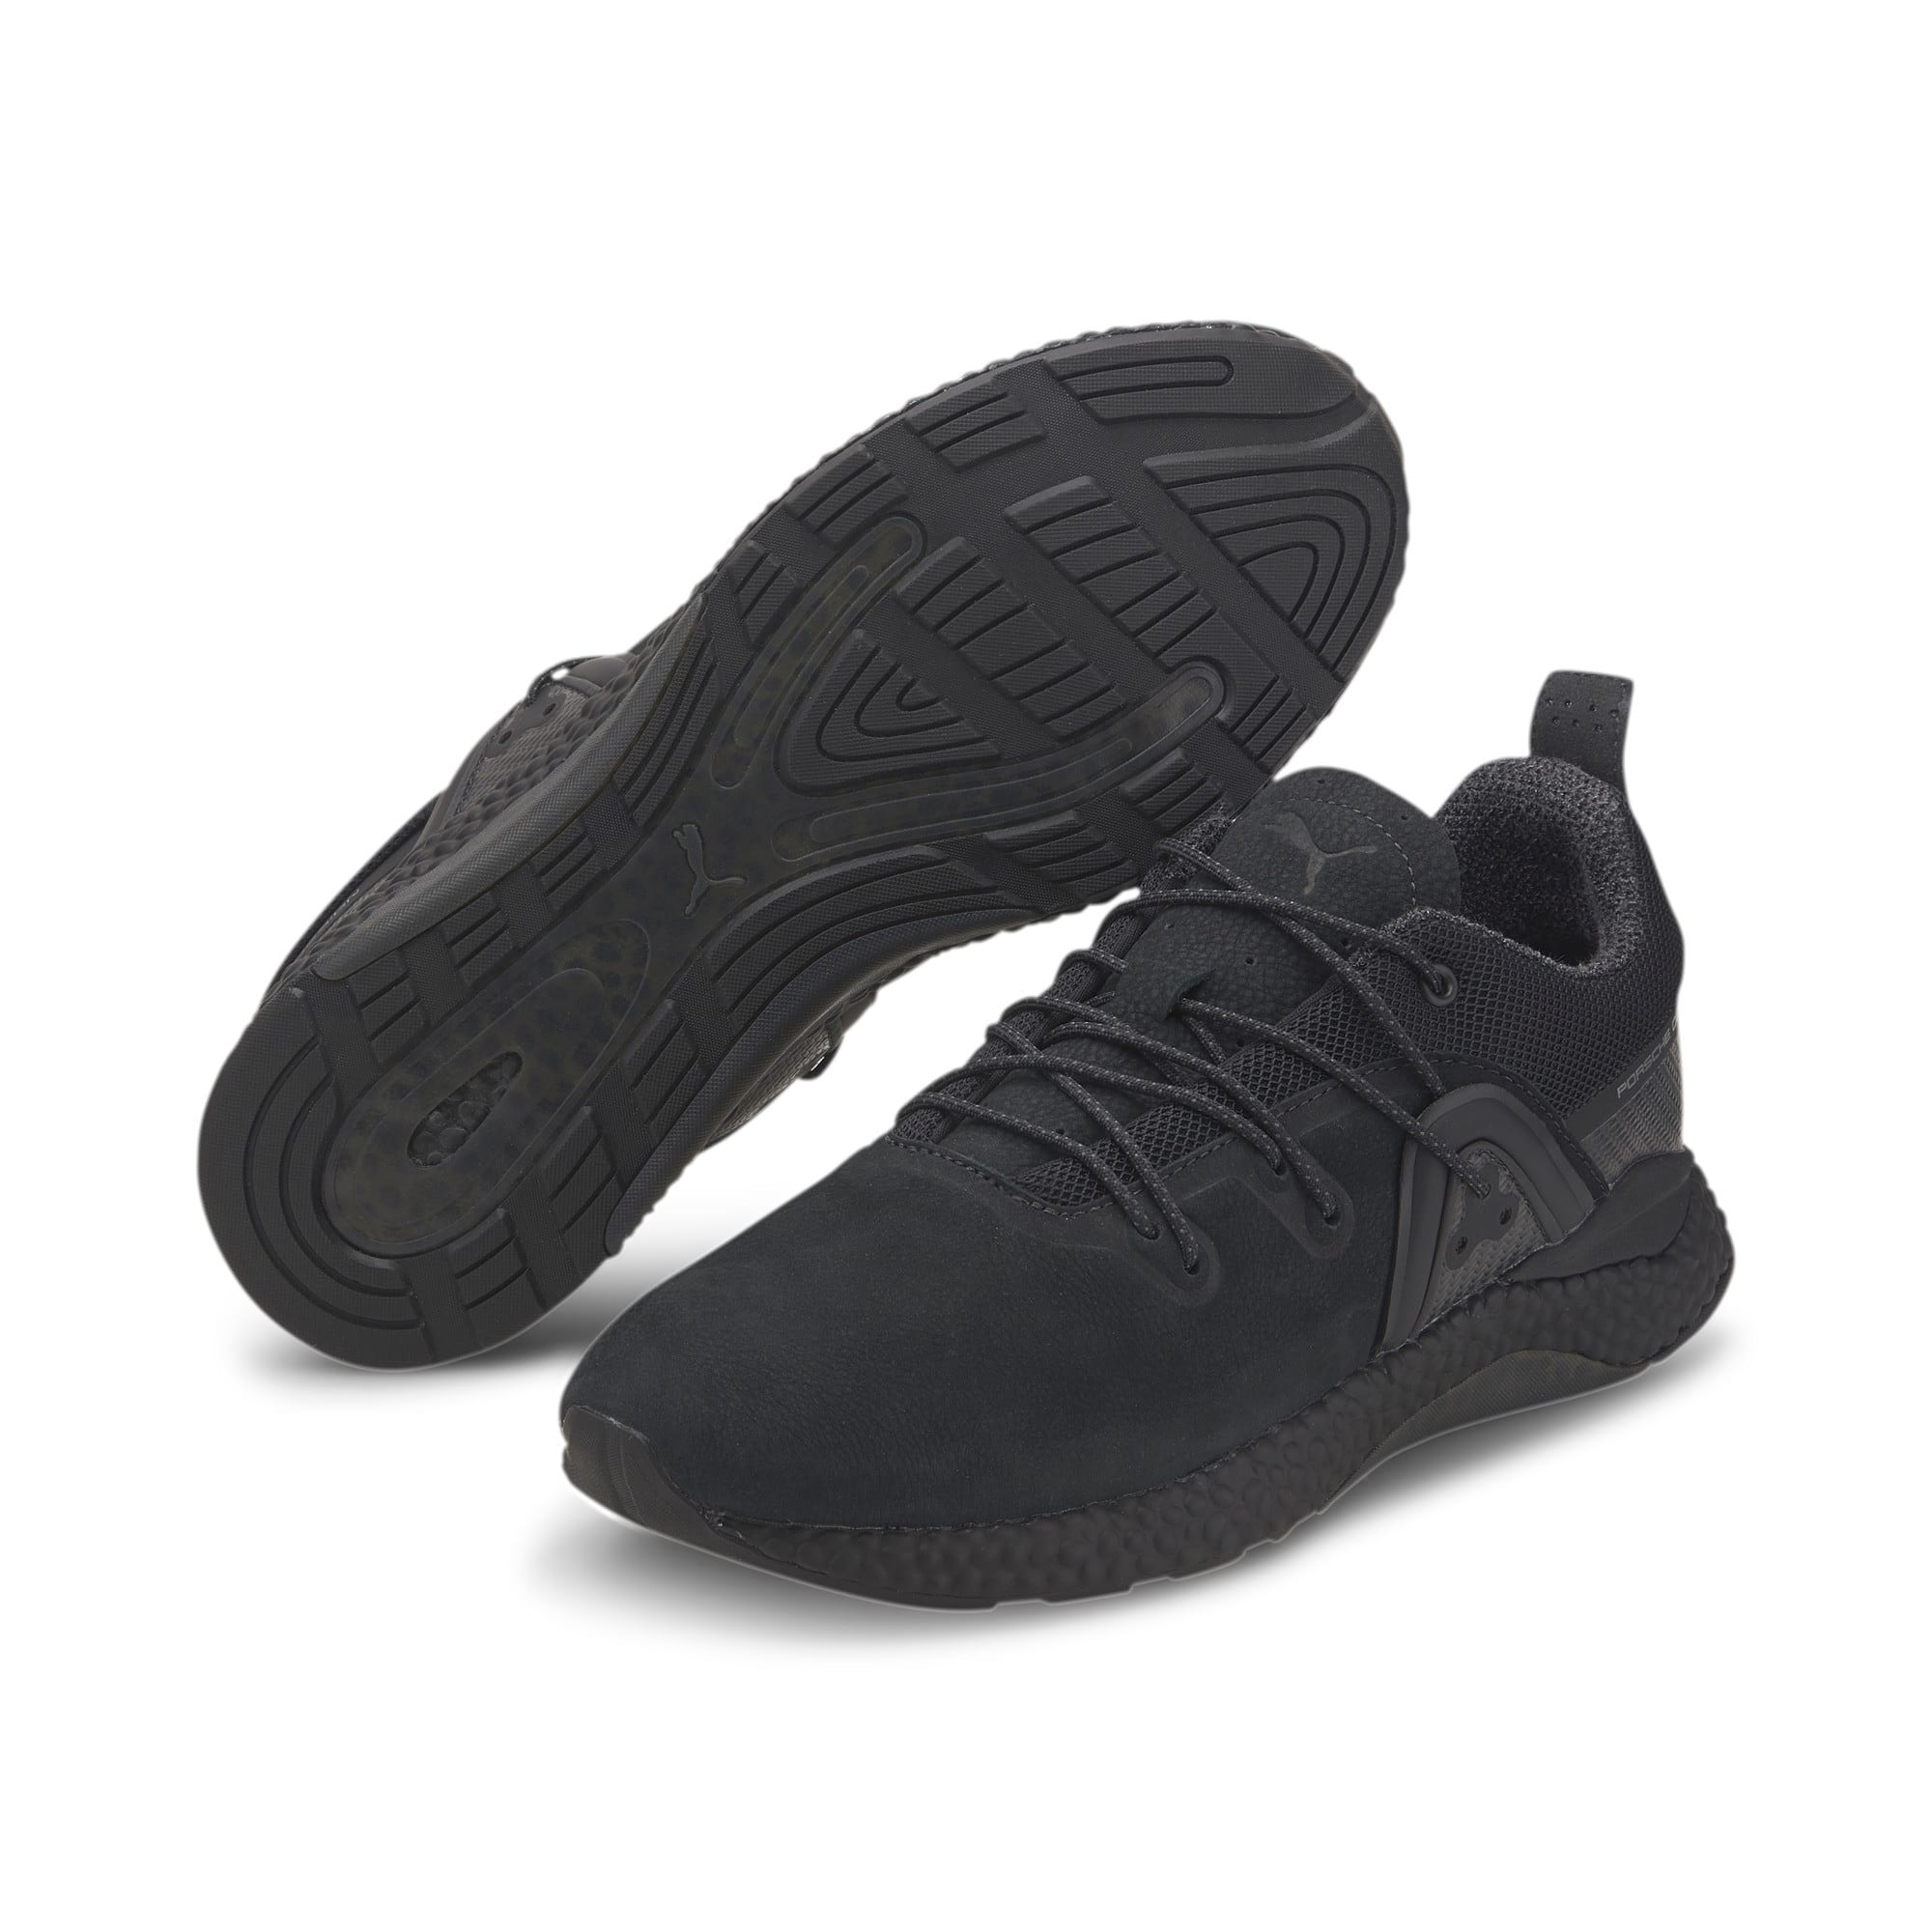 Thumbnail 3 of Porsche Design HYBRID Runner Men's Trainers, Jet Black-Jet Black, medium